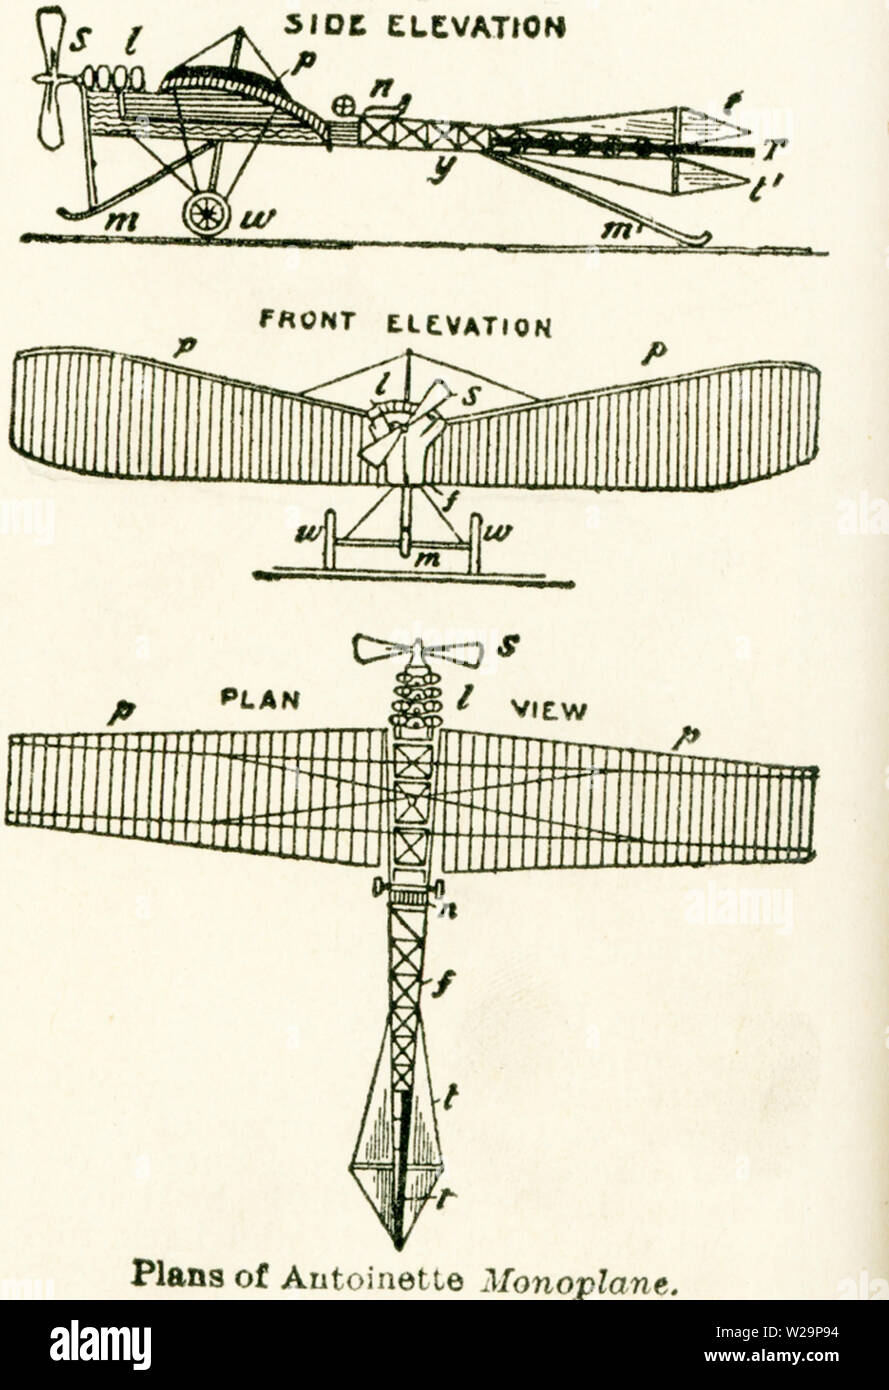 This diagram of the plans of the Antoinette Monoplane date to the early 1920s. In the first years of flying machines, there were two types: the biplane that was composed of two firmly connected planes (the type of the Wright borthers' machine) and the monoplane or single gliding plane that was used by Jean Bleriot to fly across the English Channel in 1909. The monoplane's first flight was in 1911. It was built in France and was a military airplane. Shown here are the side elevation, the front elevation, and plan view (looking at the machine from the top). - Stock Image